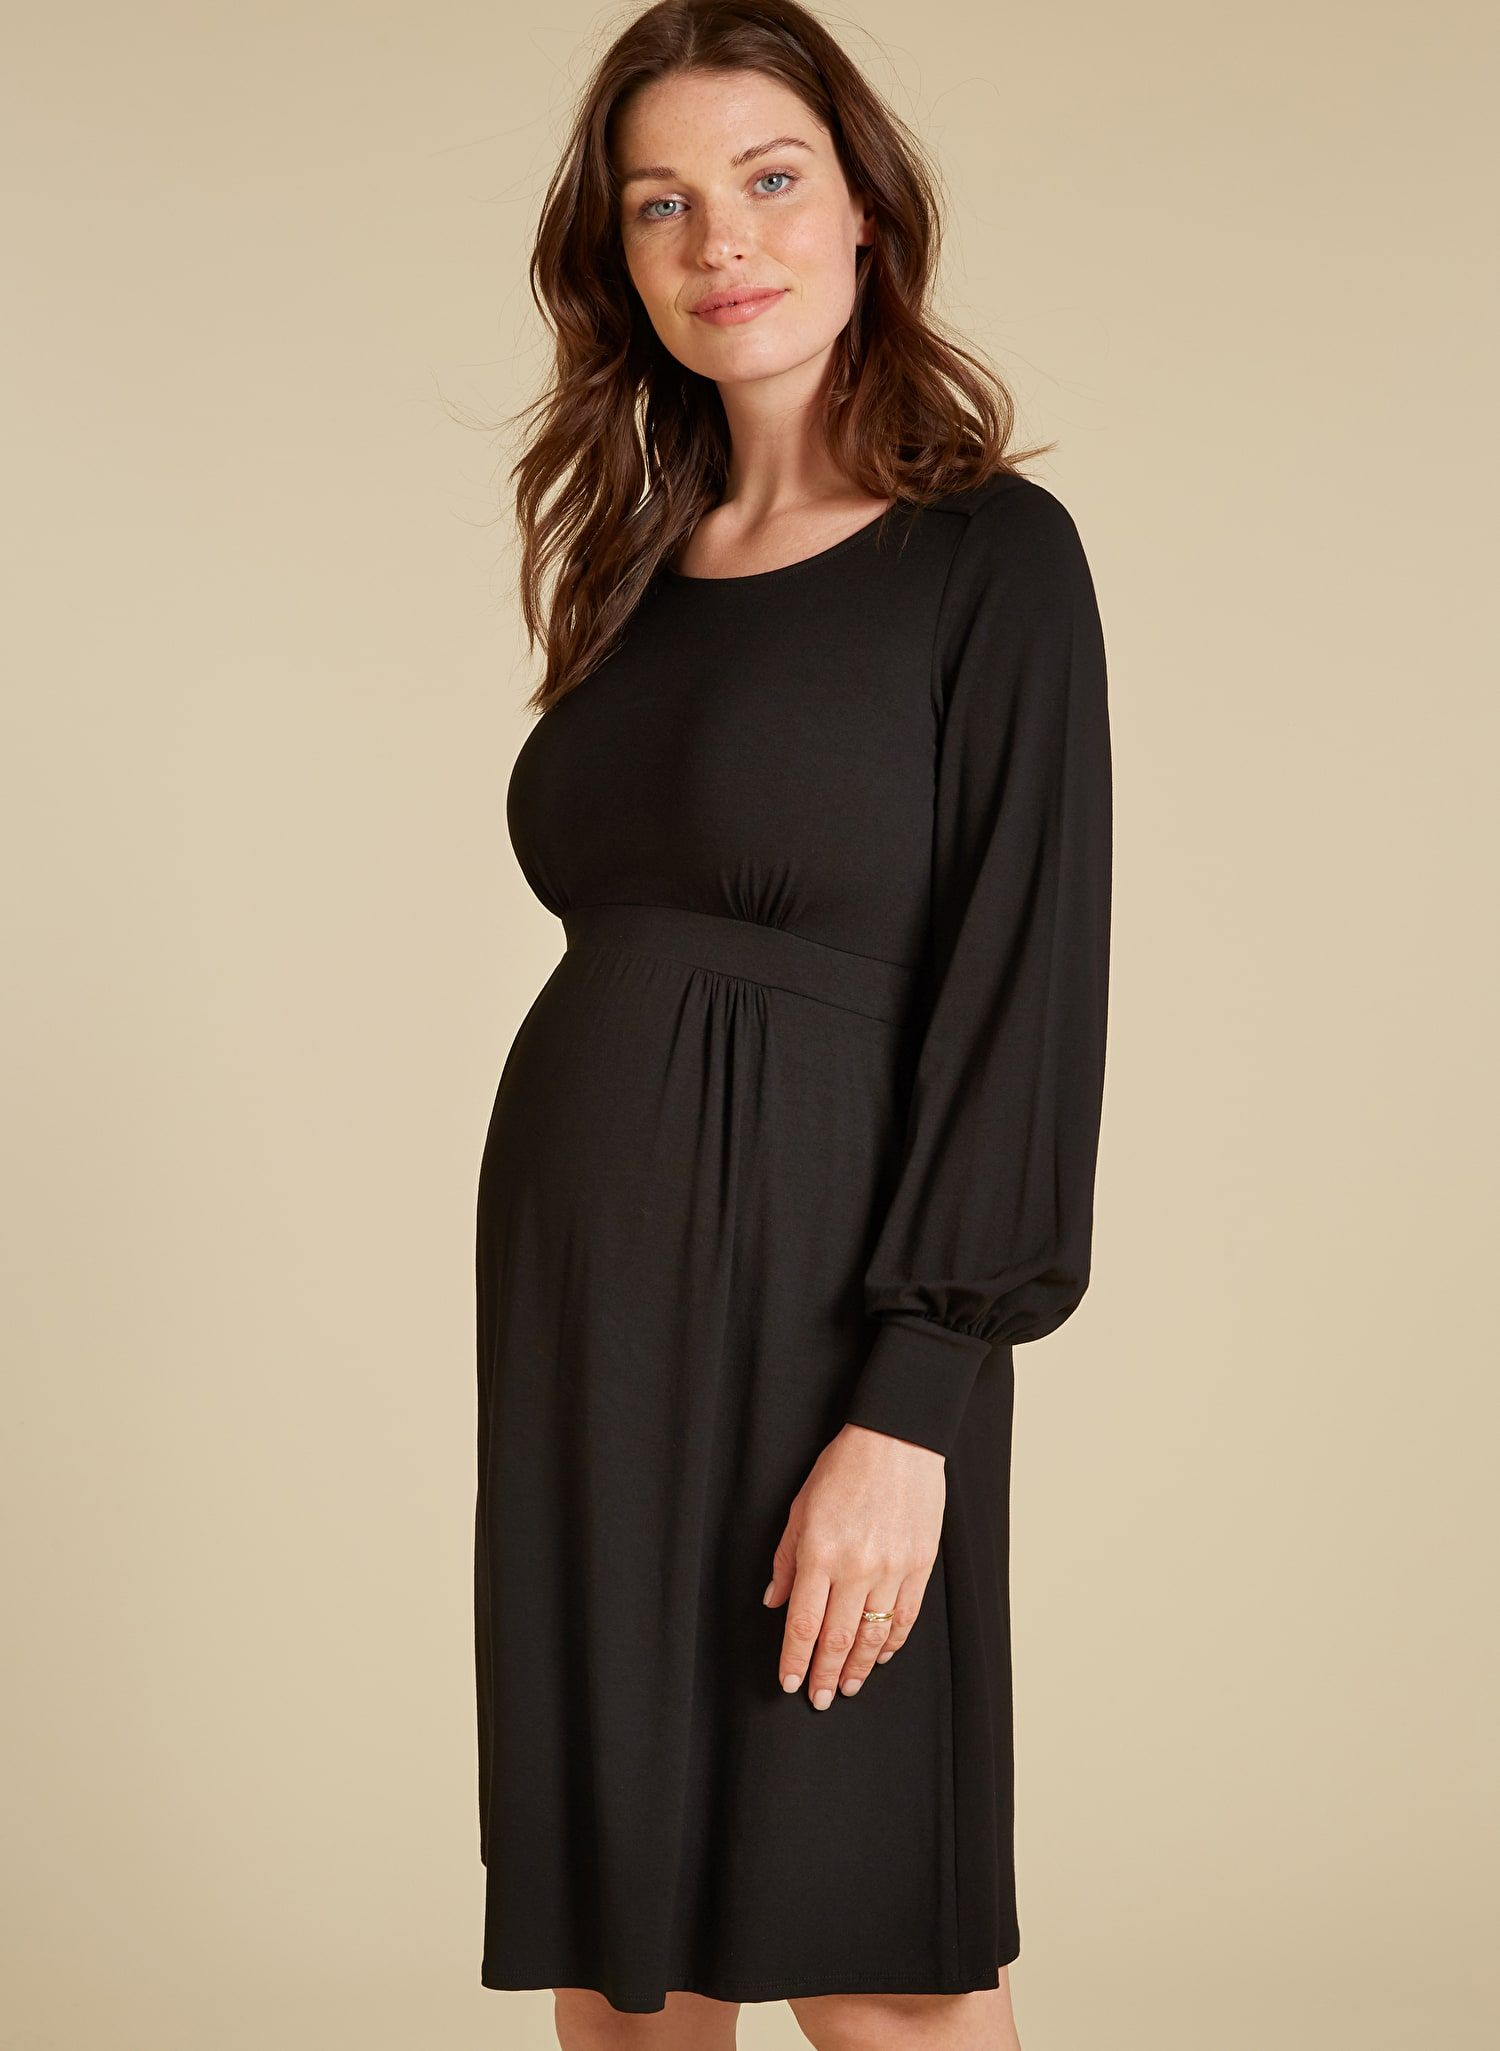 4e14463e61a32 Ginny Maternity Dress in 2019 | Pregnancy | Maternity dresses ...